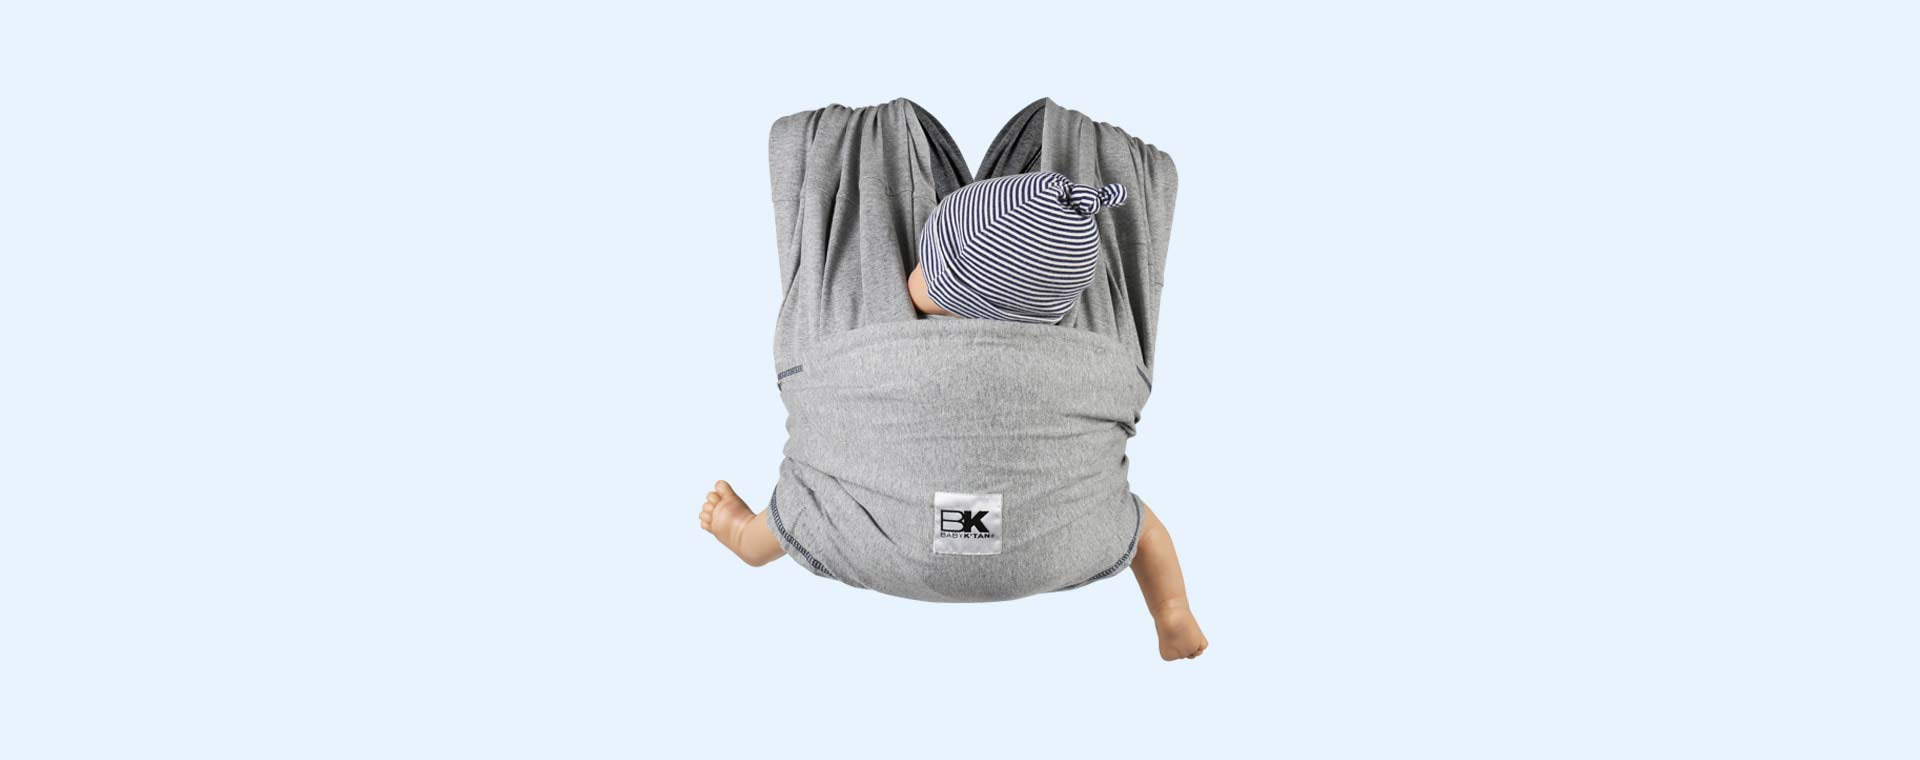 Grey Baby K'tan Original Wrap Baby Carrier